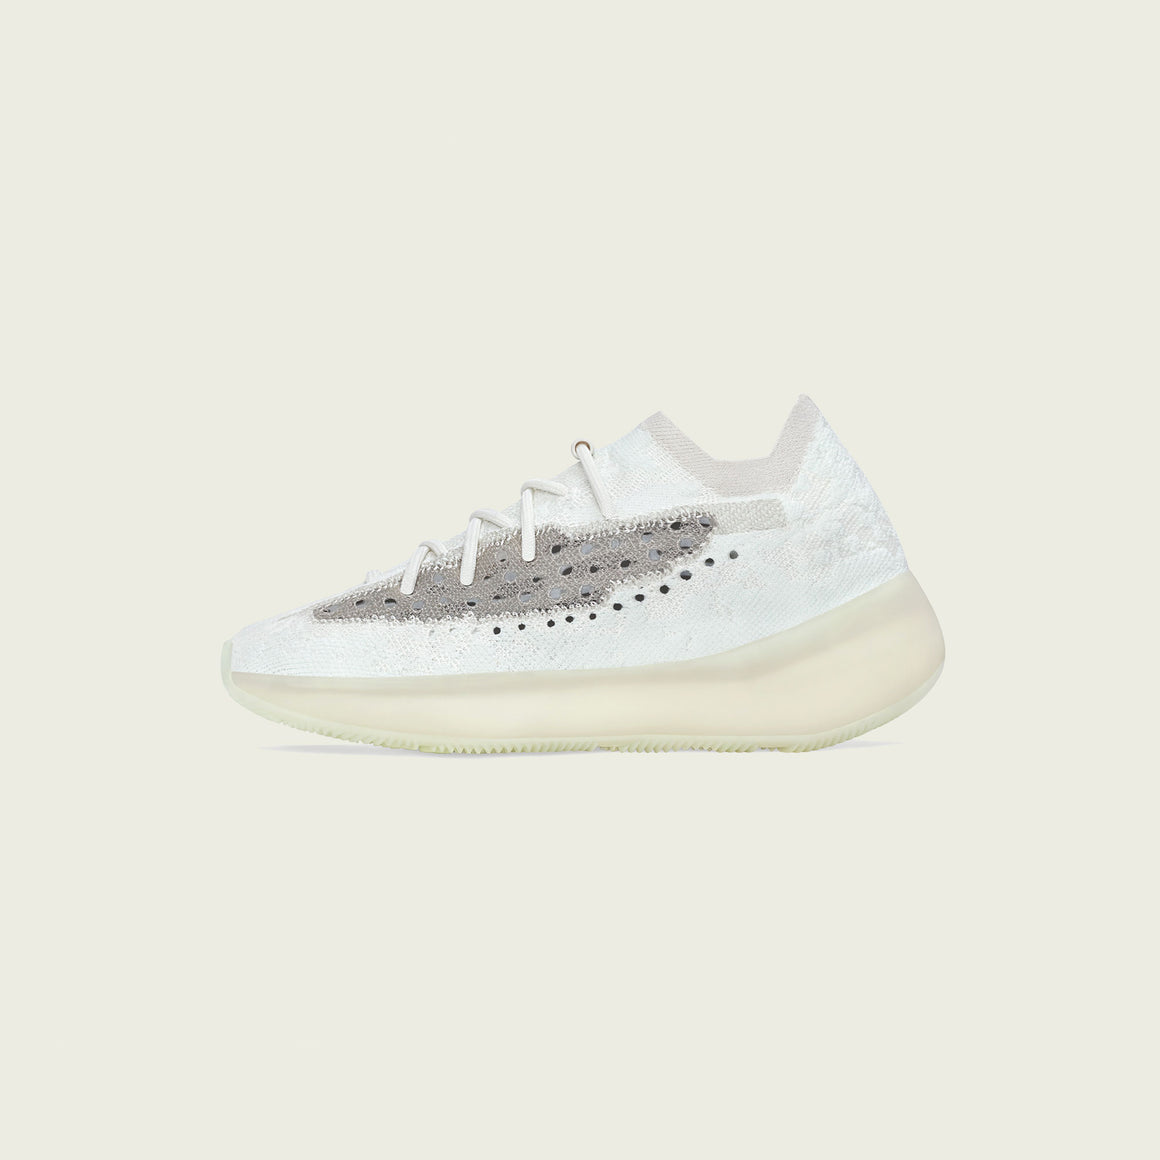 Yeezy Boost 380 - Calcite Glow– Up There